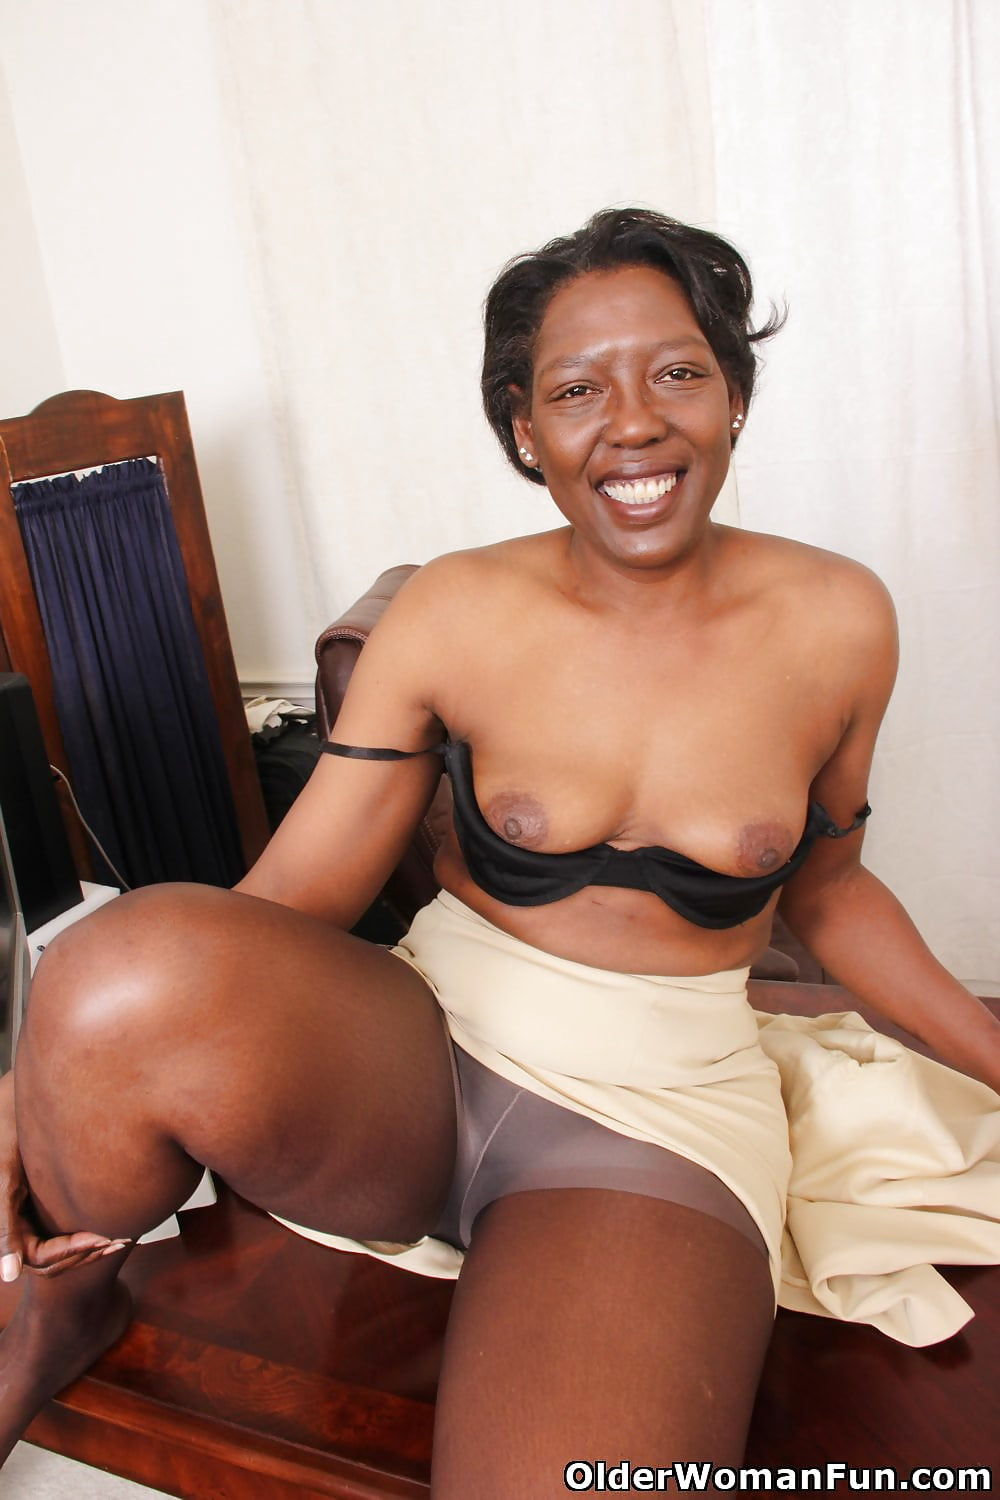 Mature on black thumbs gallery, horny mature video galleries